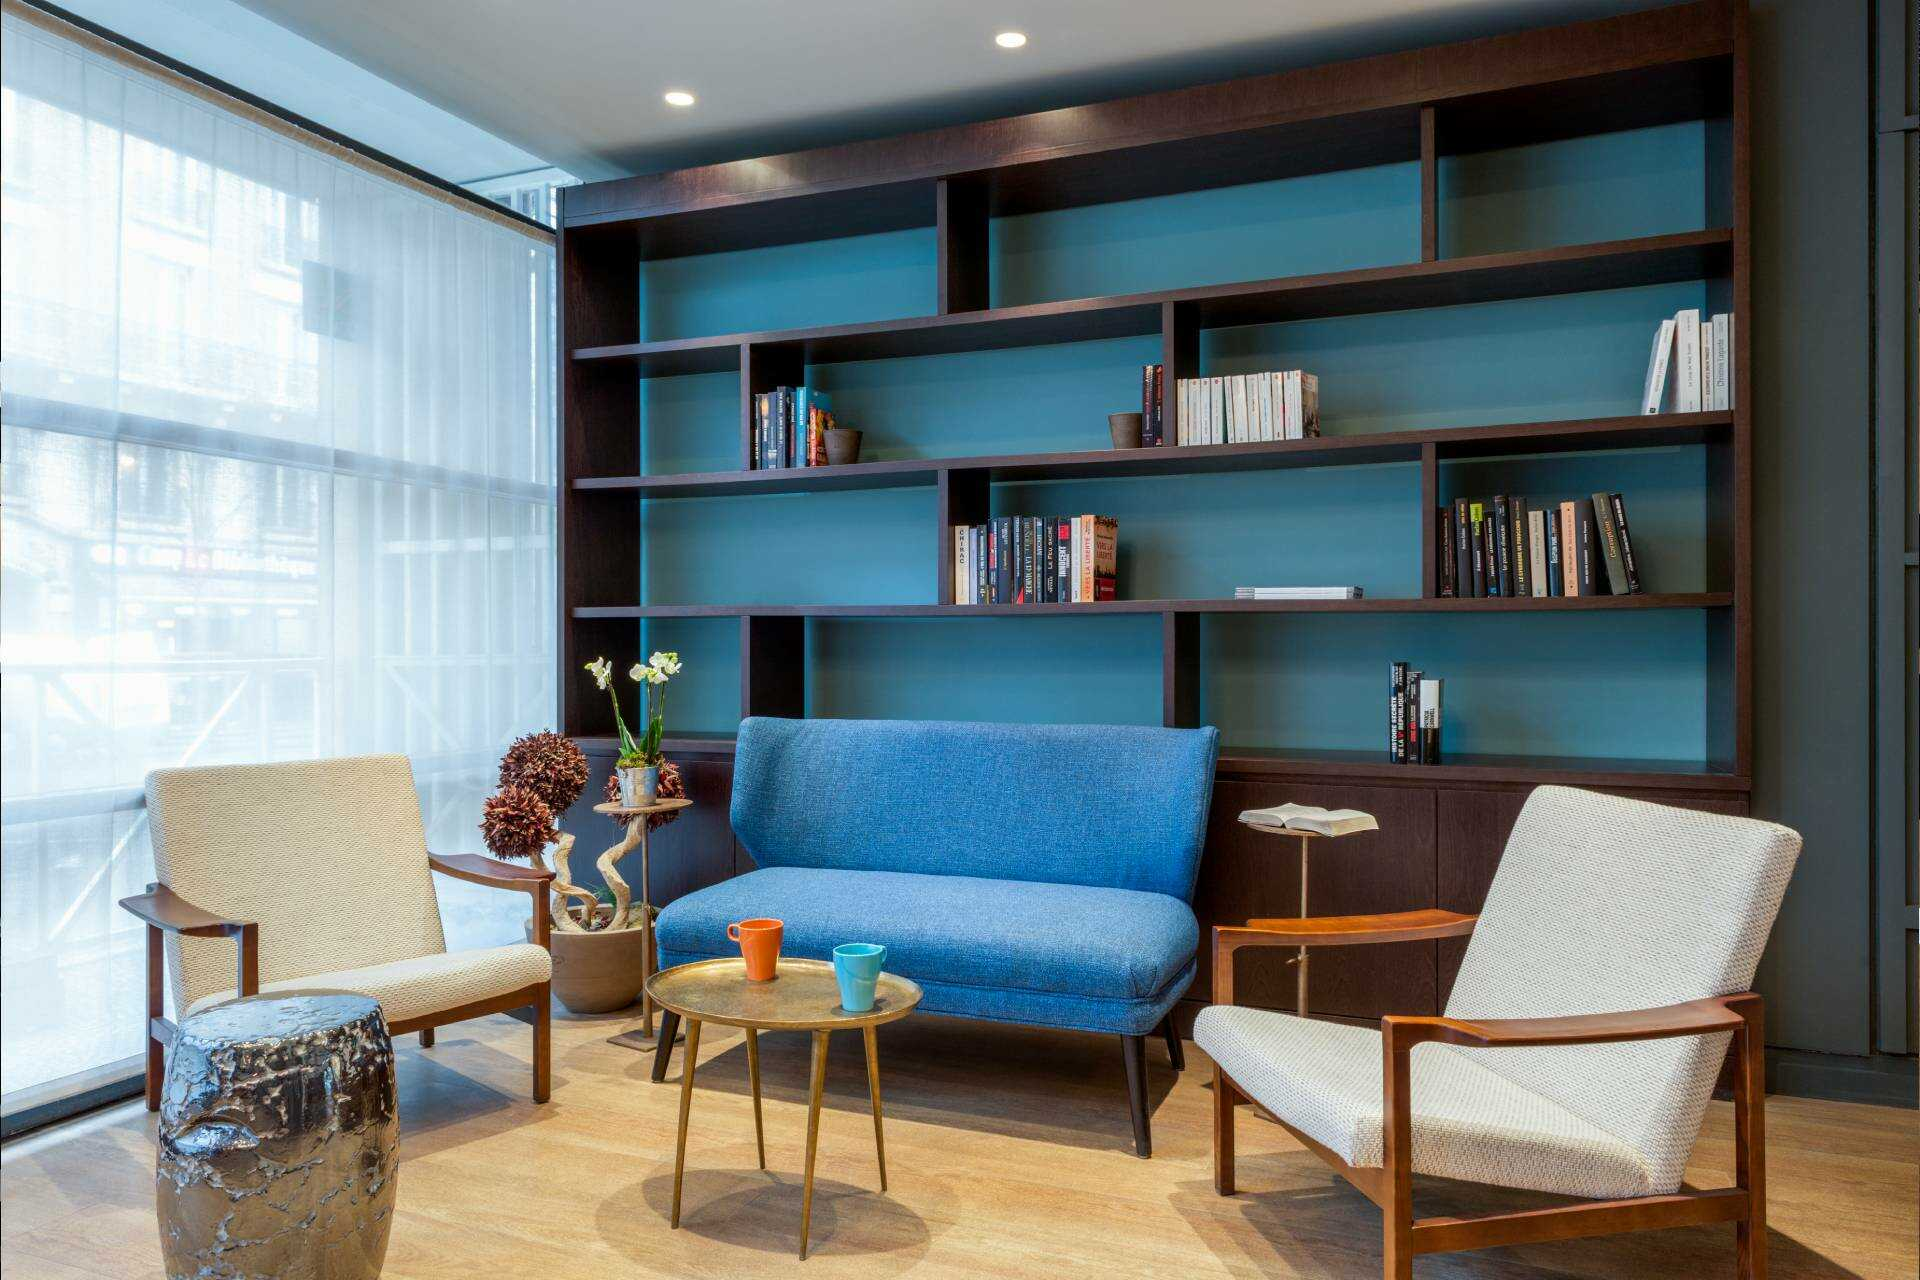 quality_suites_bercy_bibliotheque_by_happyculture.jpg